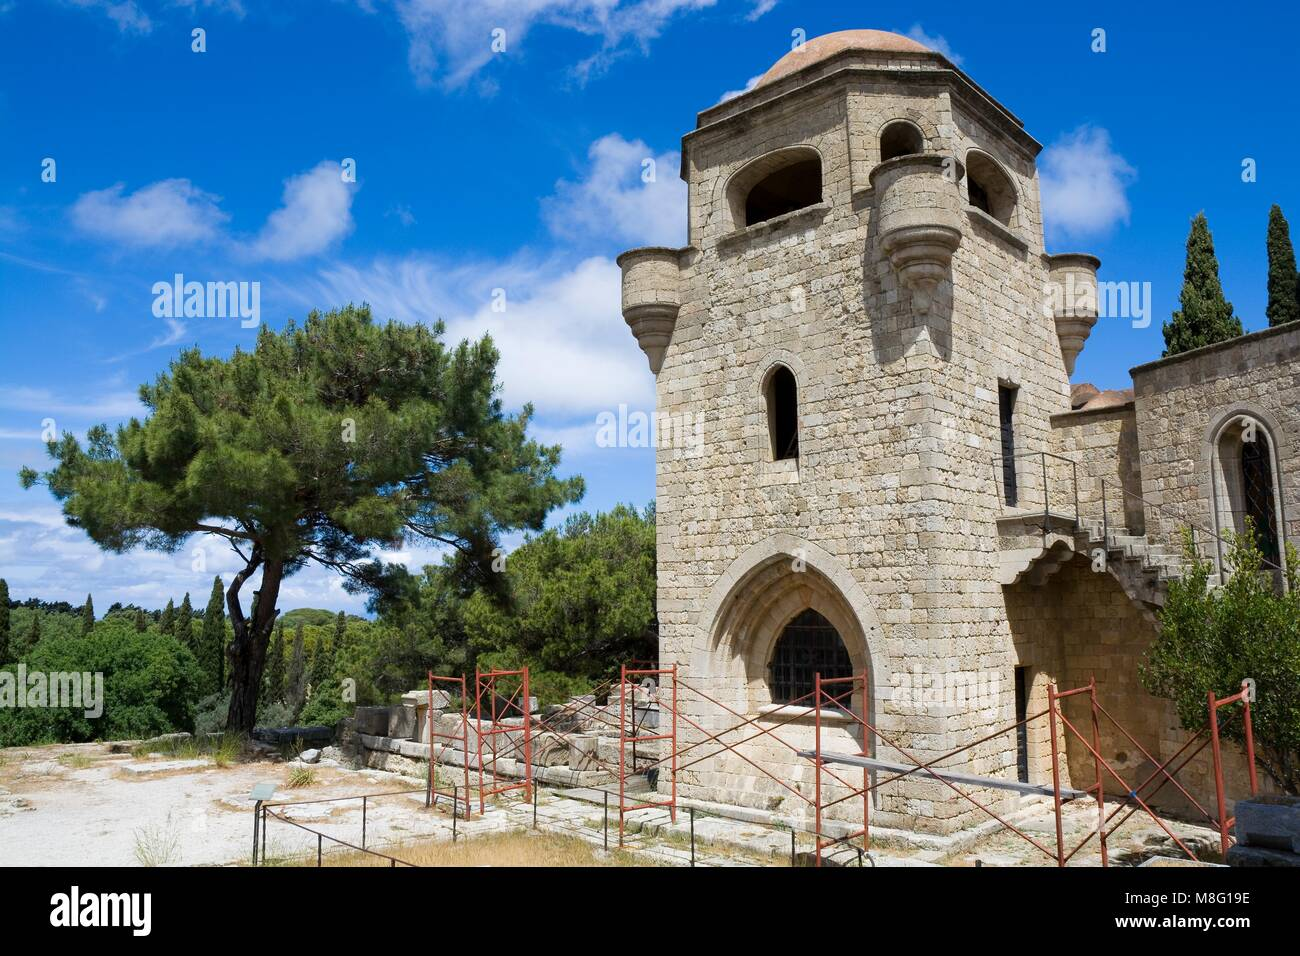 Filerimos Monastery in Rhodes Island built by the Knights of Saint John, Greece - Stock Image